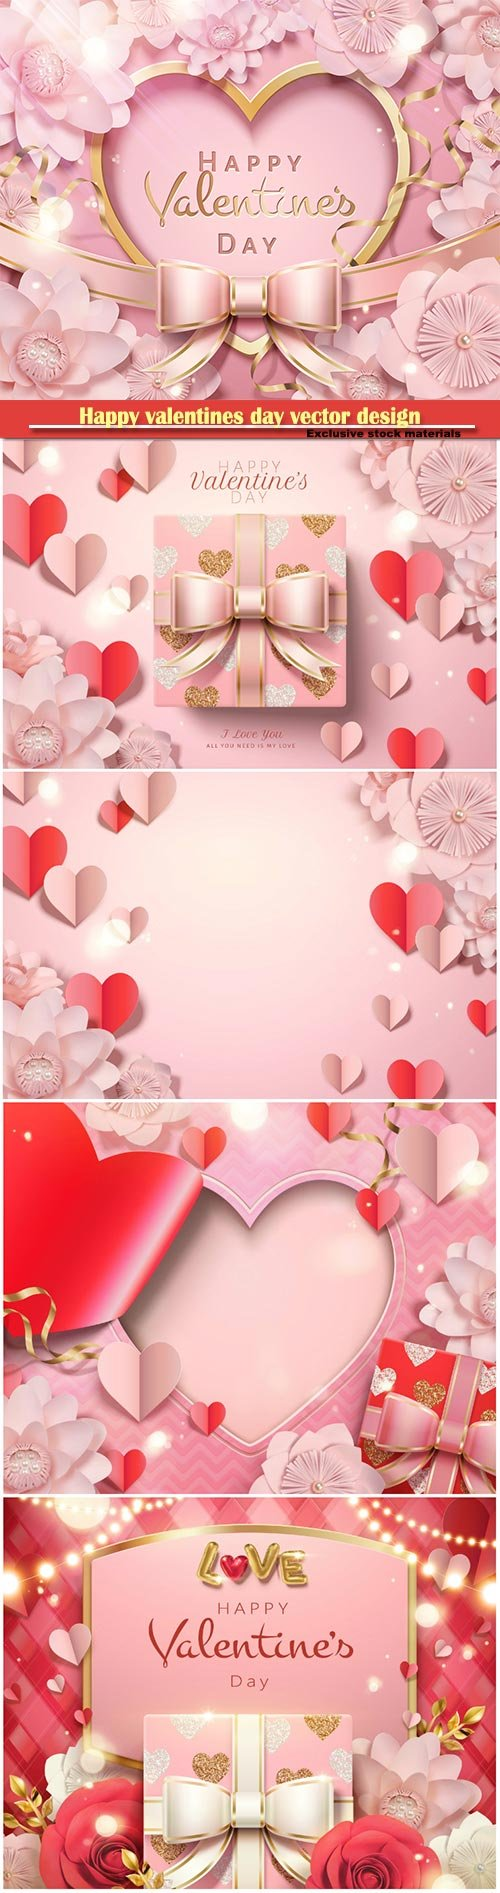 Happy valentines day vector design with heart, balloons, roses in 3d illustration # 5